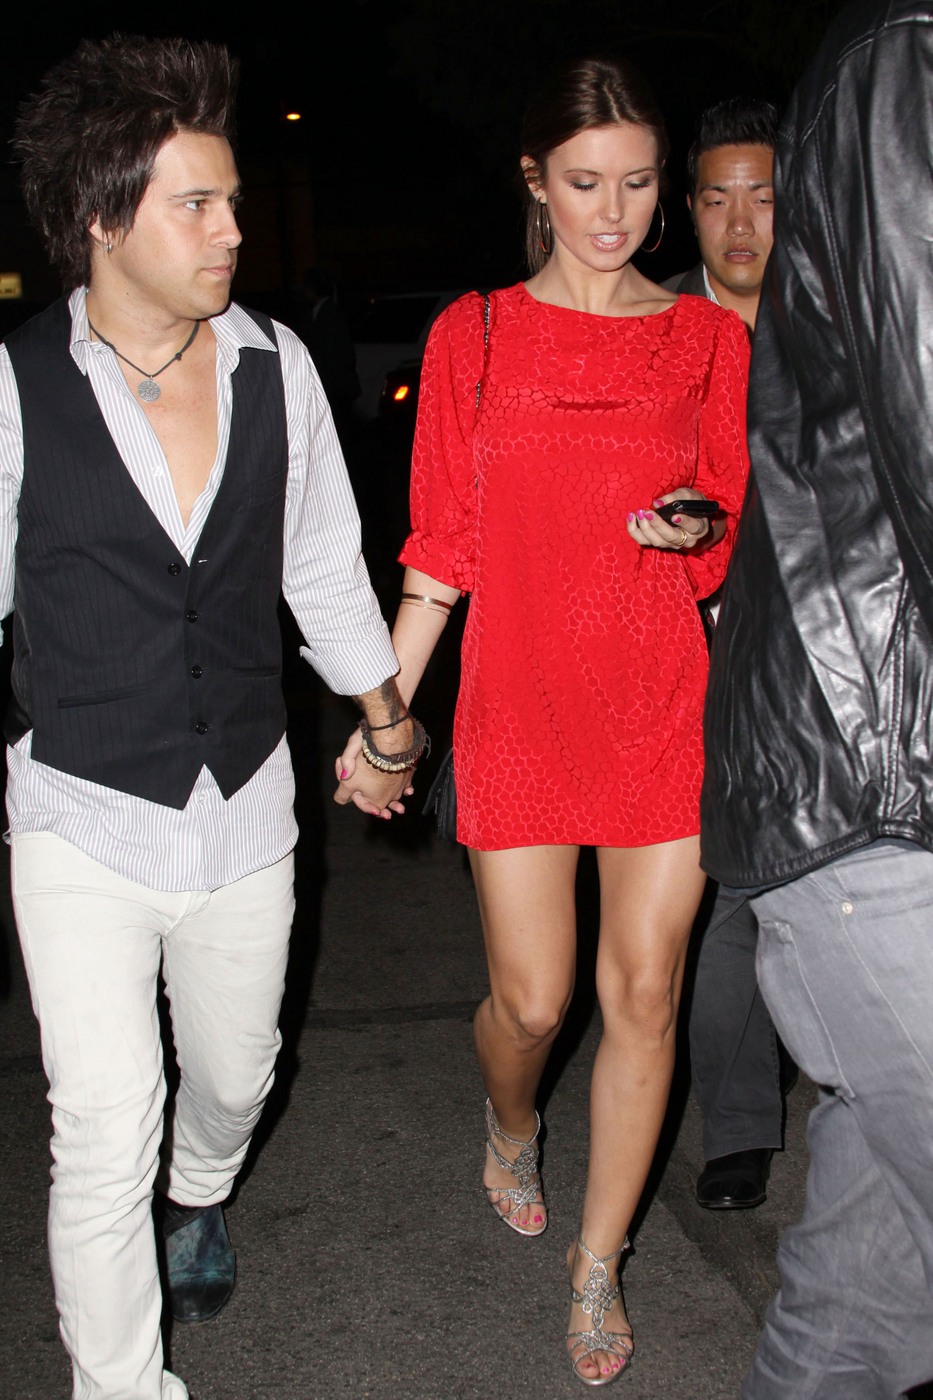 Audrina Patridge and Ryan Cabrera try to make a discreet arrival at the